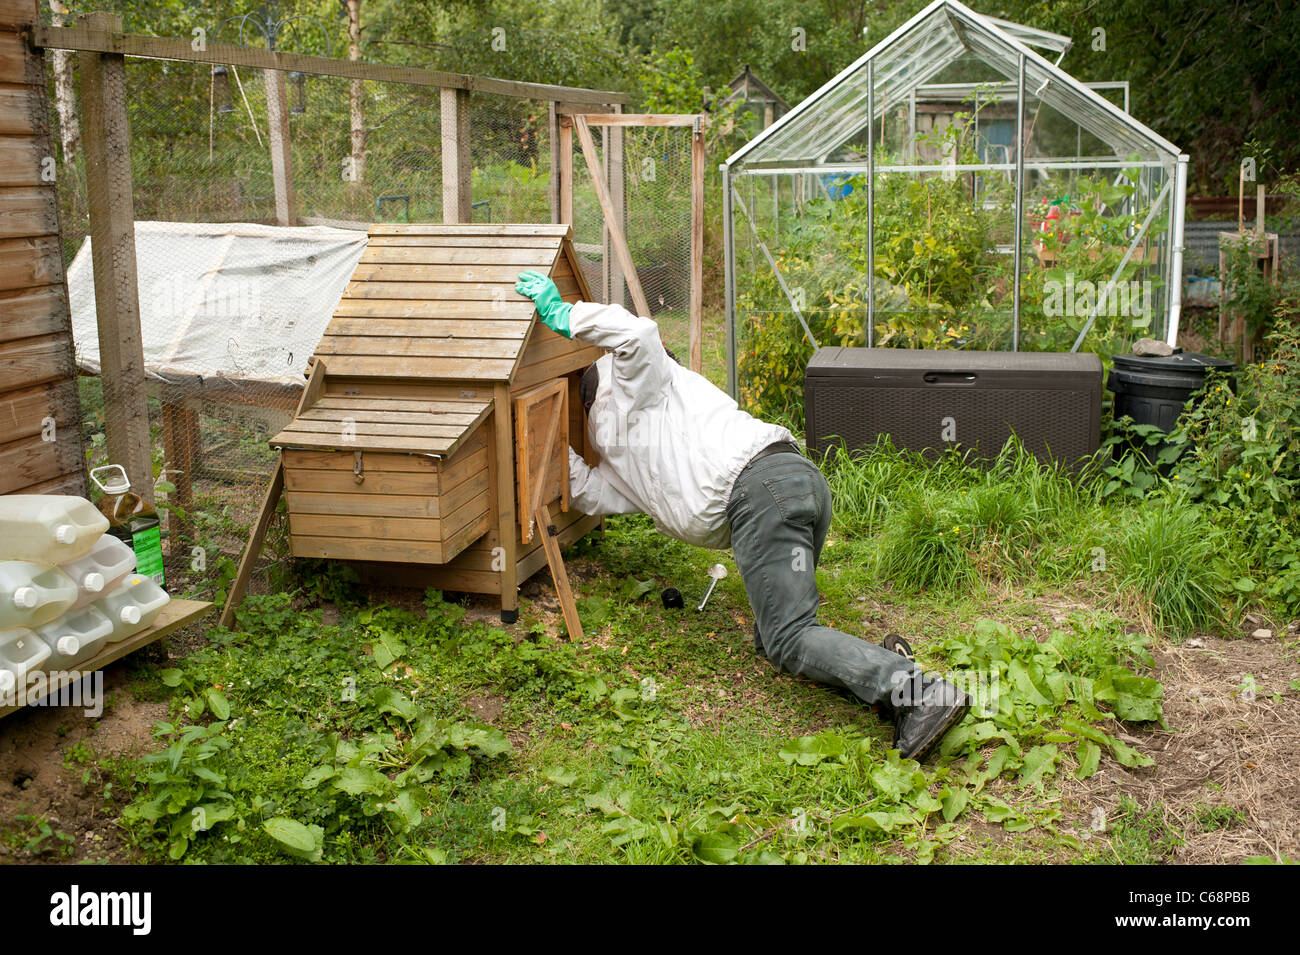 a local authority pest control officer removing a wasp nest from a chicken shed on an allotment garden, uk - Stock Image